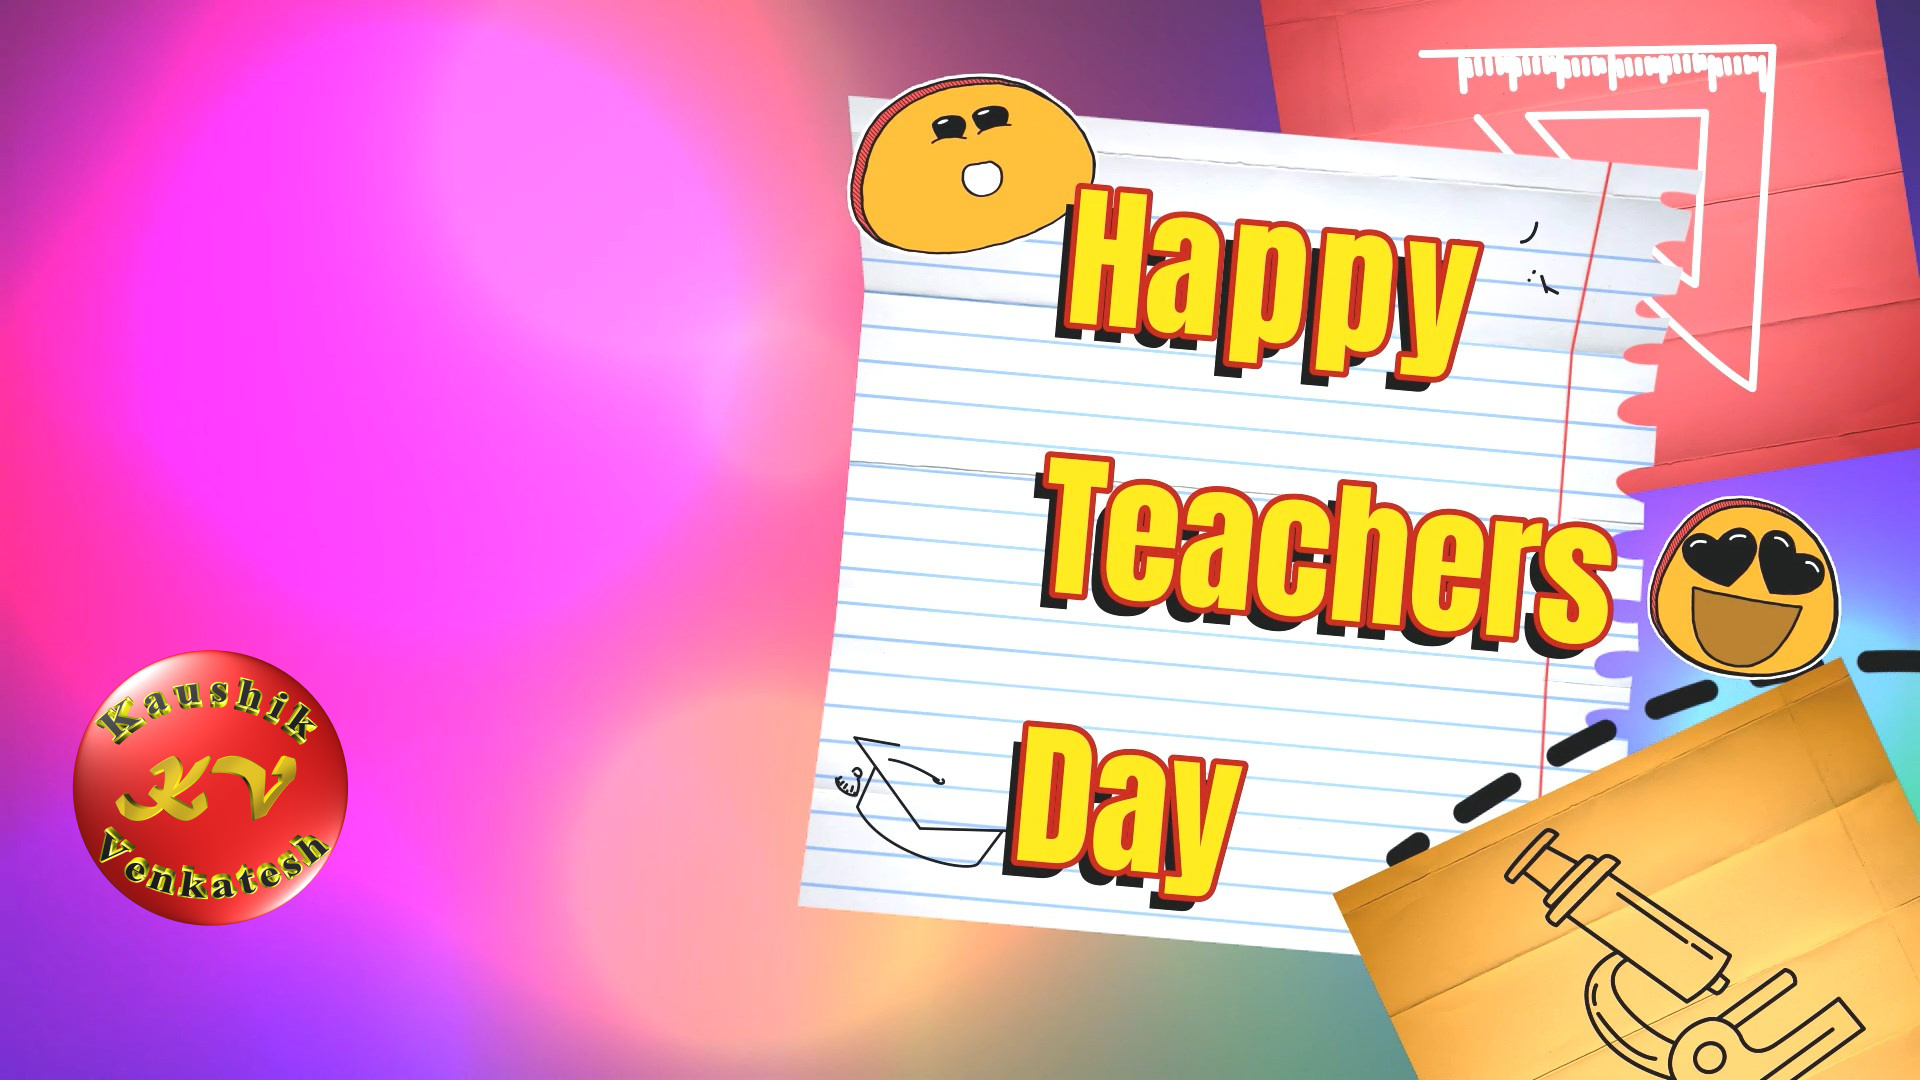 Greetings Image for Happy Teachers Day 2021